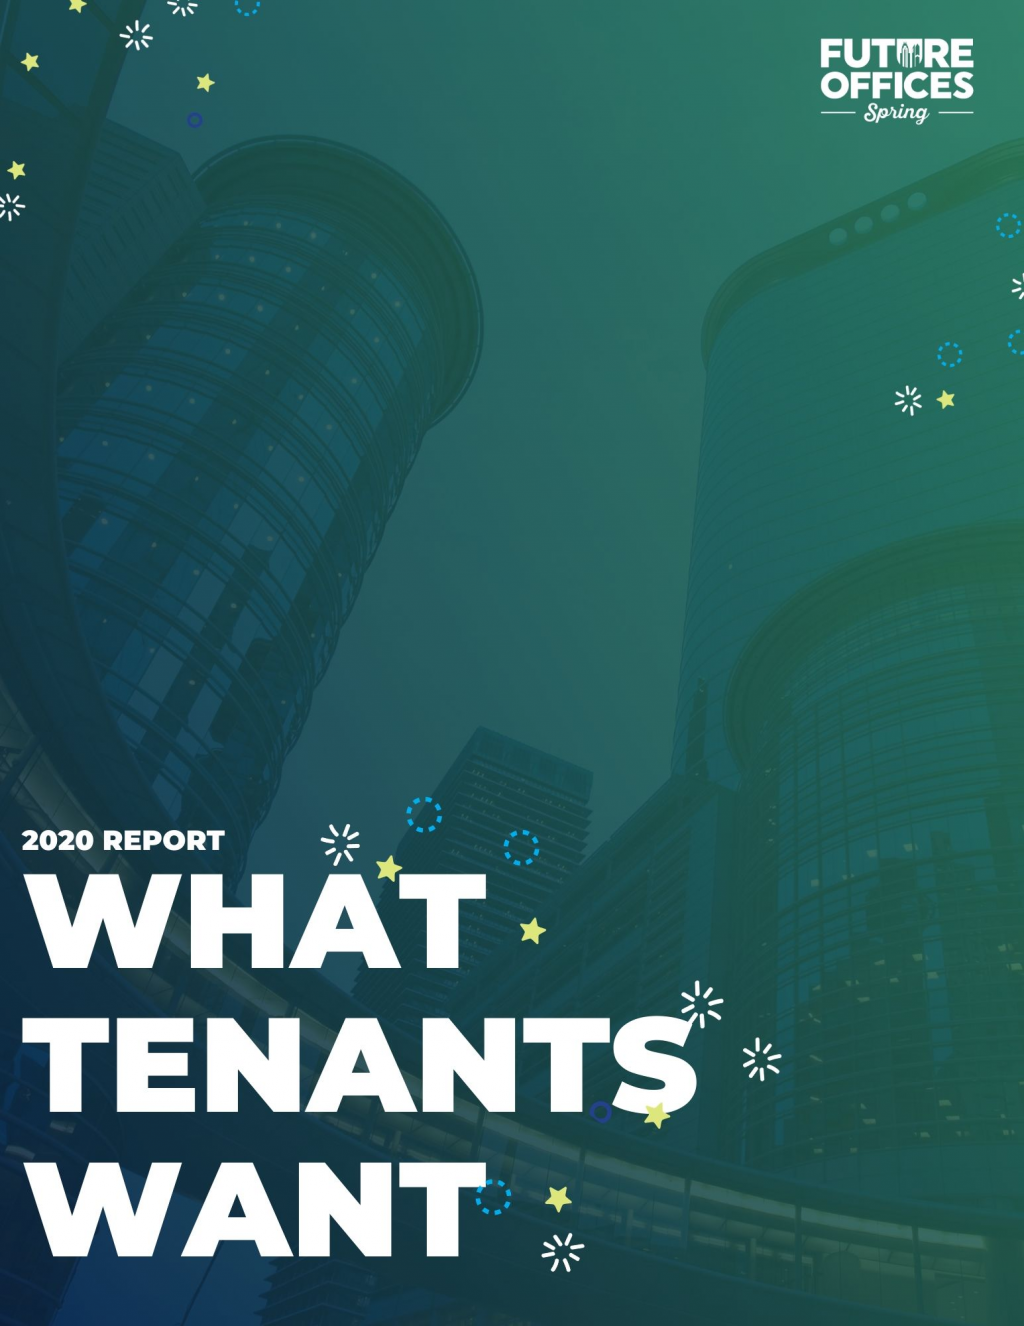 CRE 2020 Report: What Corporate Real Estate Tenants Want